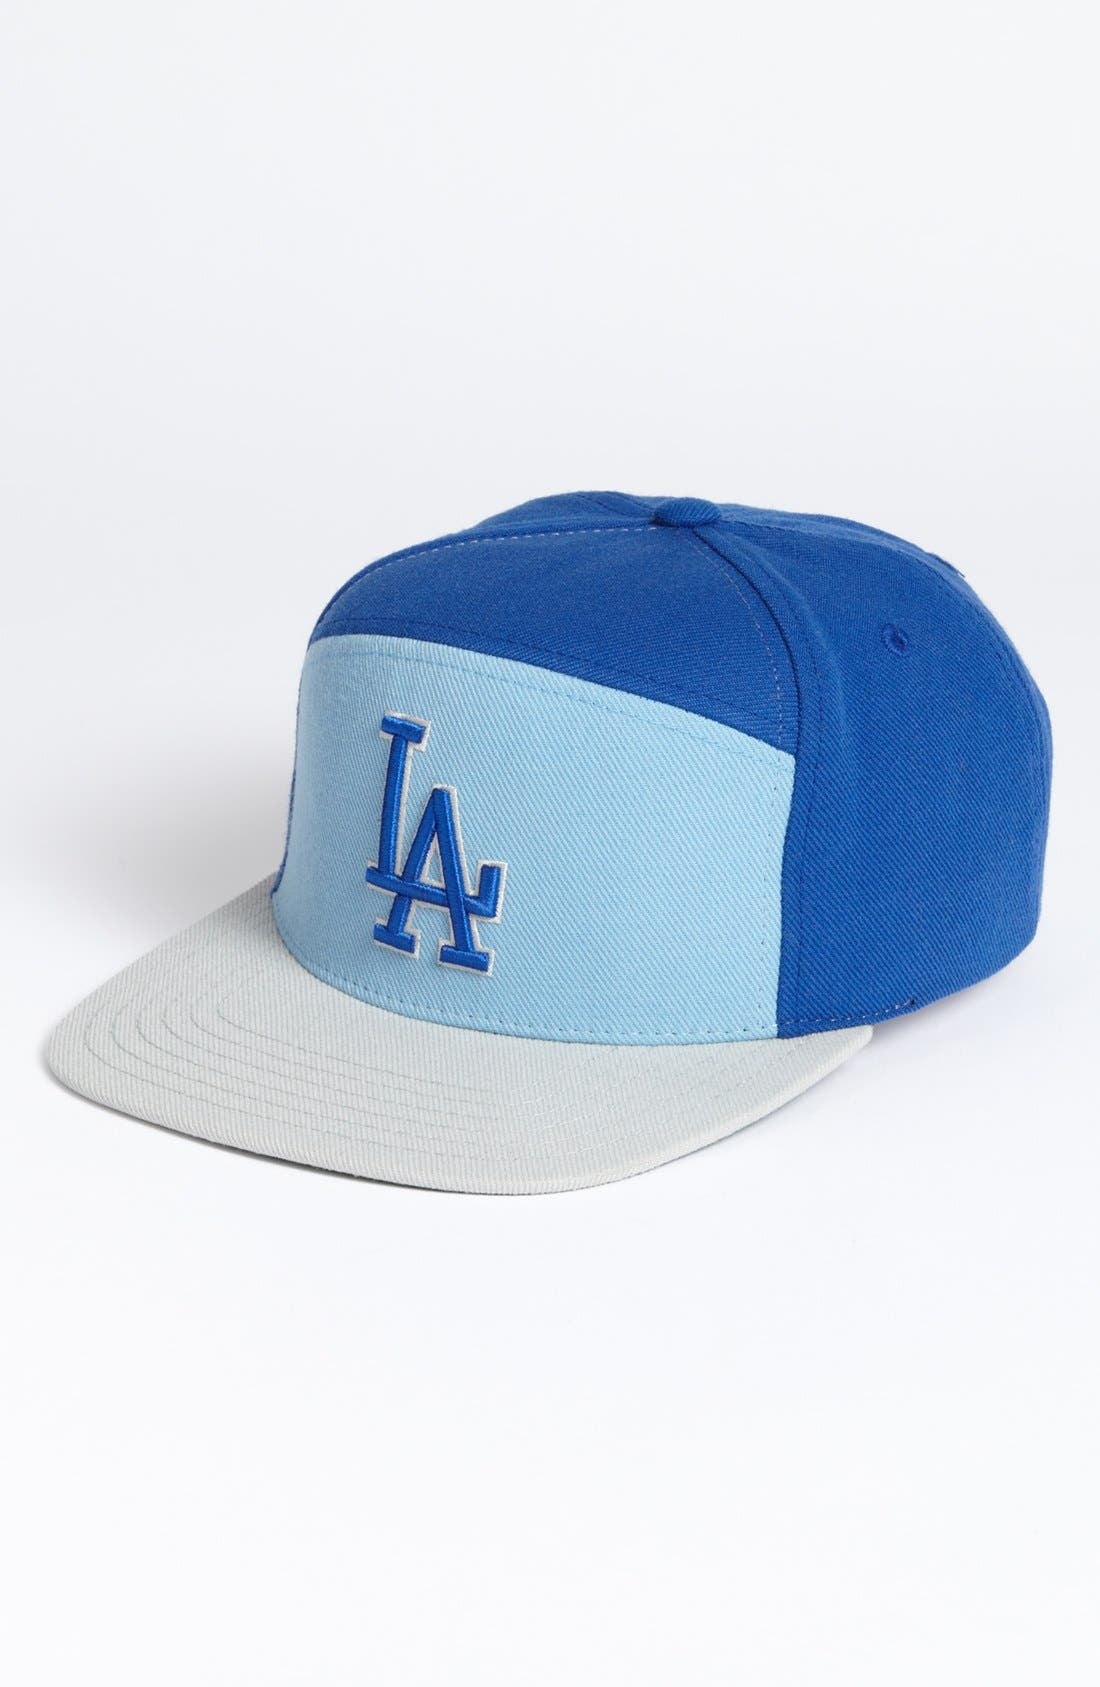 Alternate Image 1 Selected - American Needle 'Los Angeles Dodgers - Ante' Snapback Ball Cap